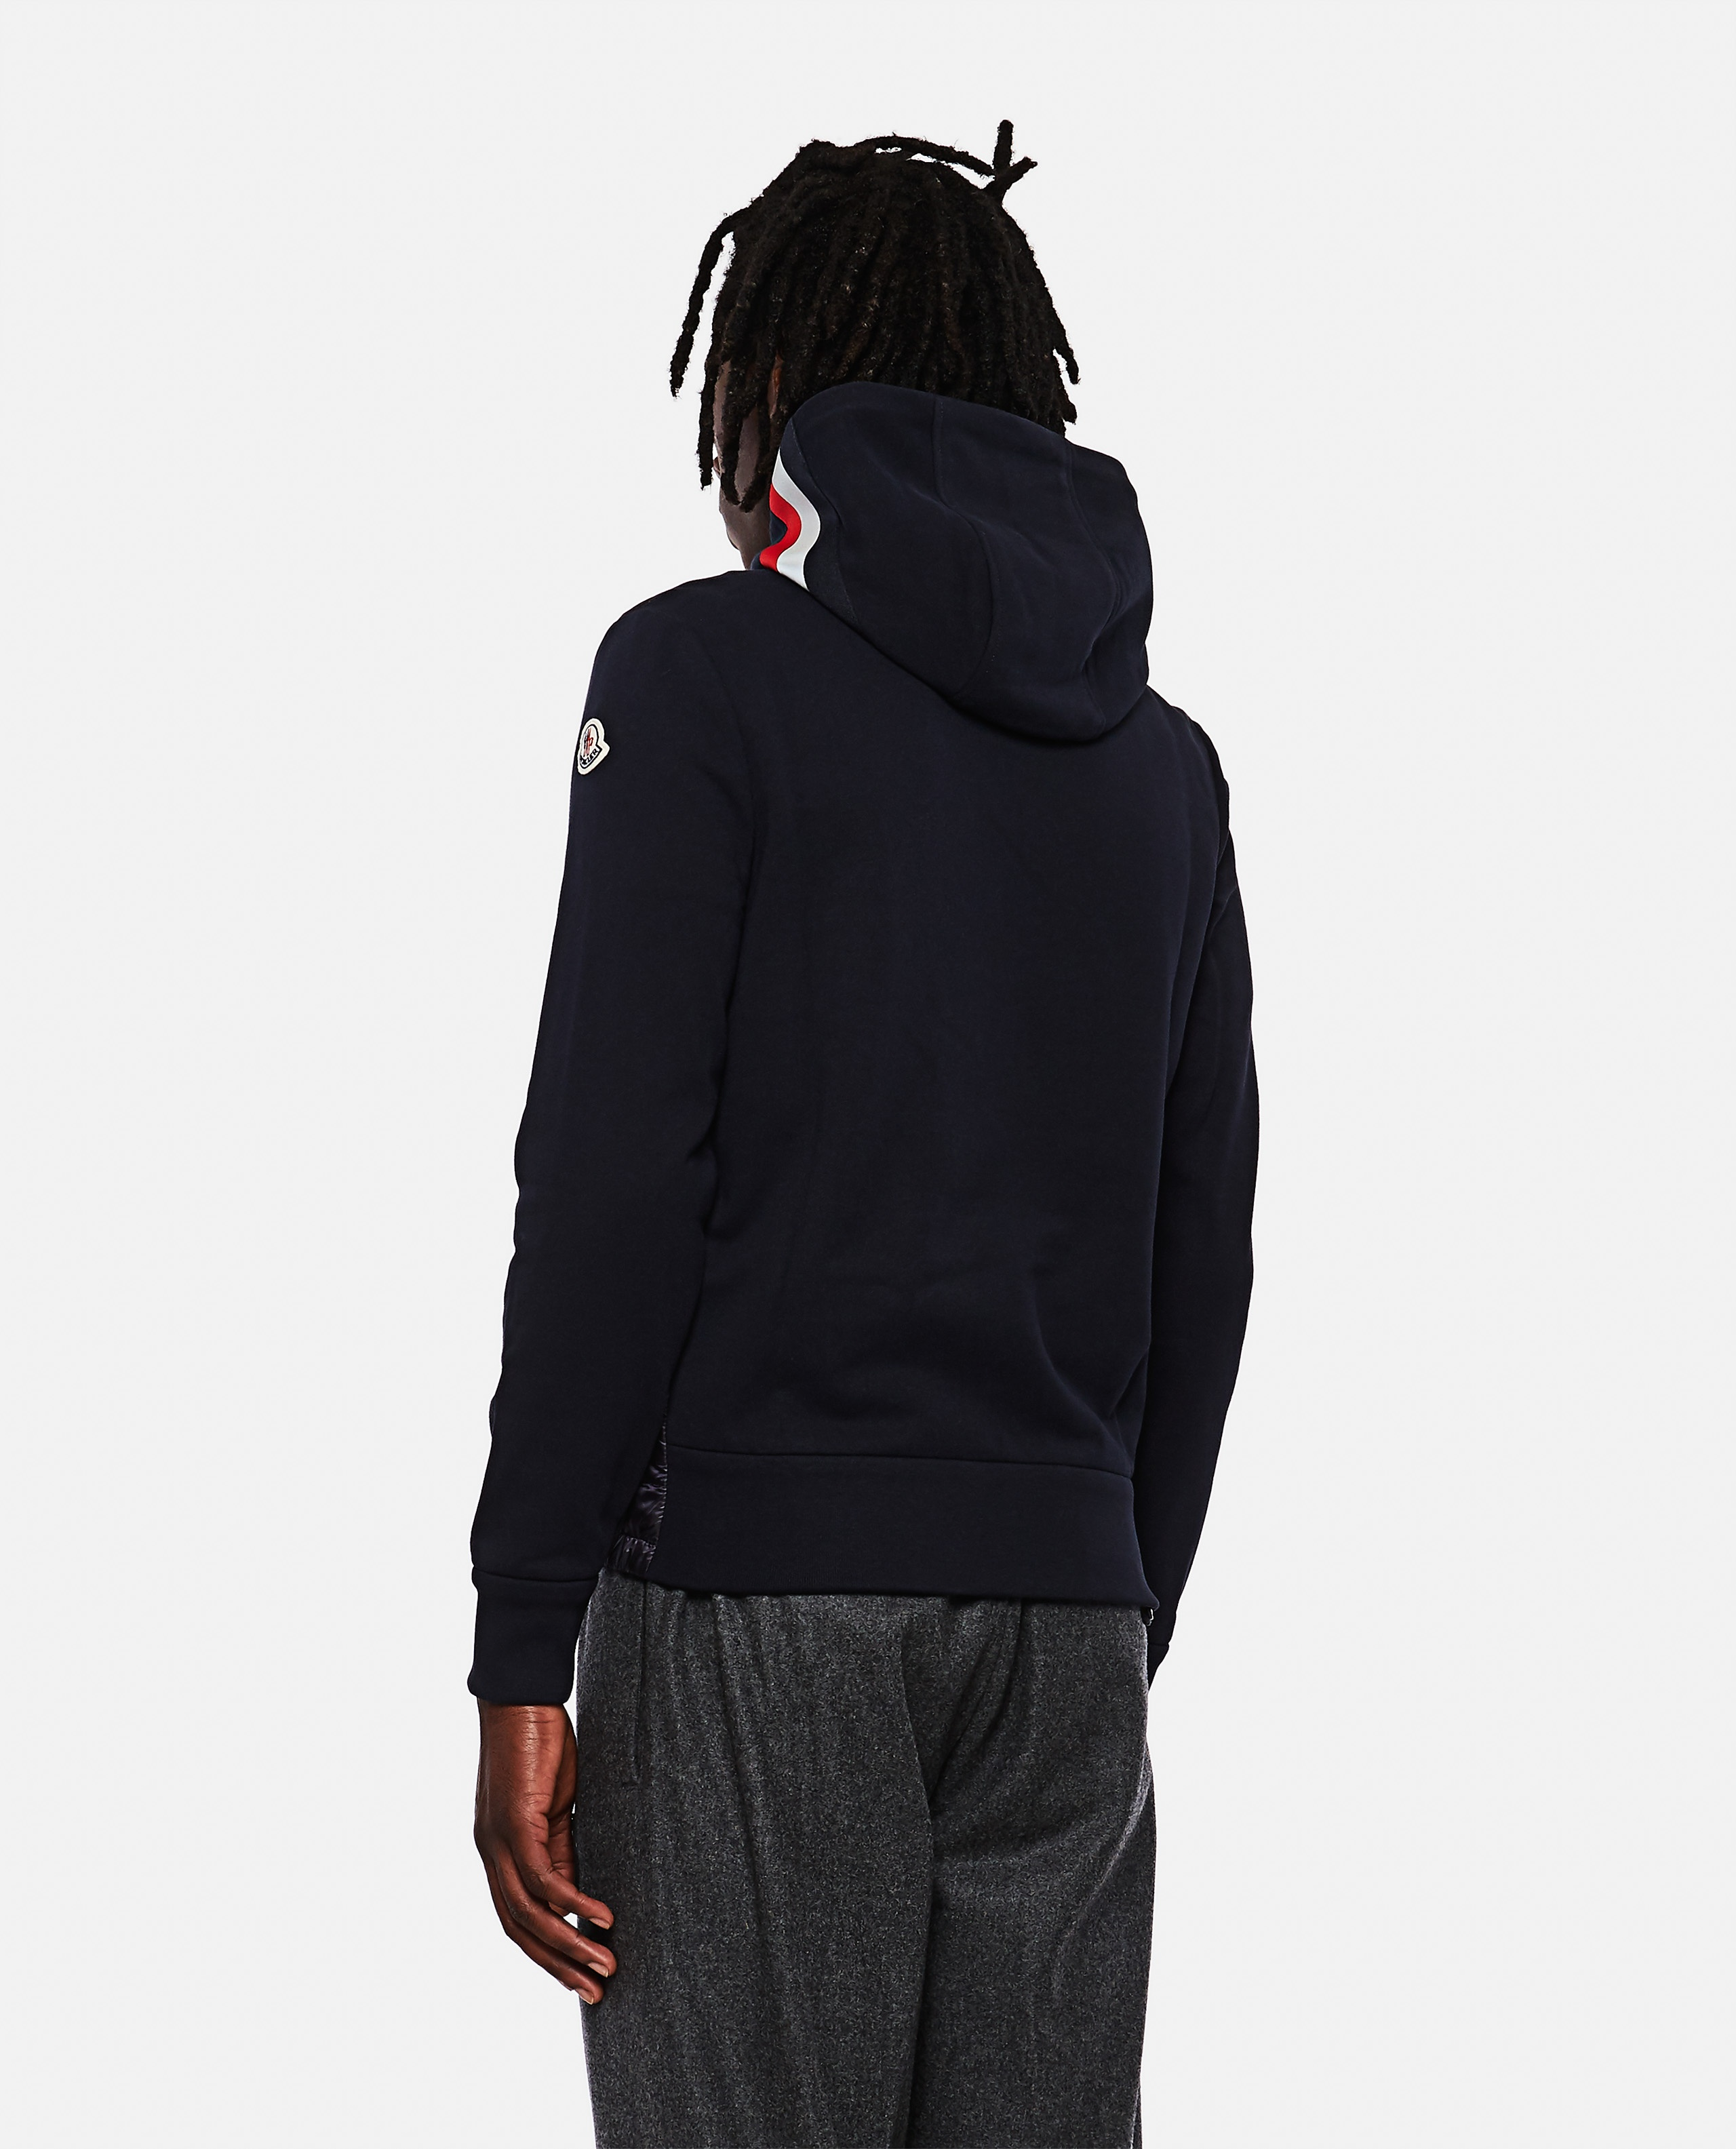 Padded sweatshirt with zip Men Moncler 000271600040013 3